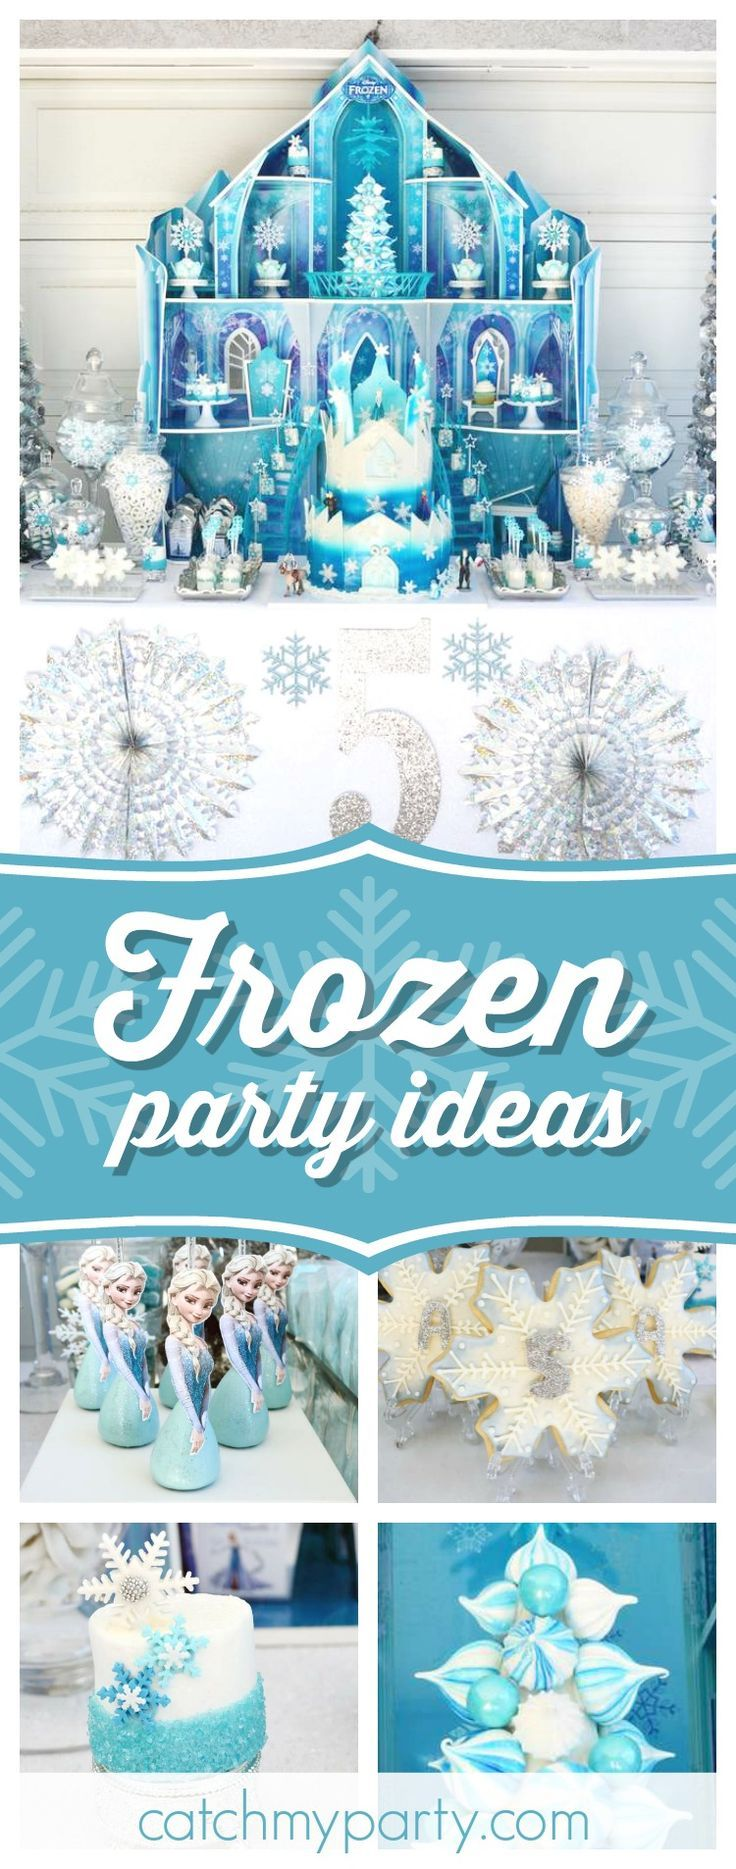 Swoon over this wonderful Frozen princess birthday party